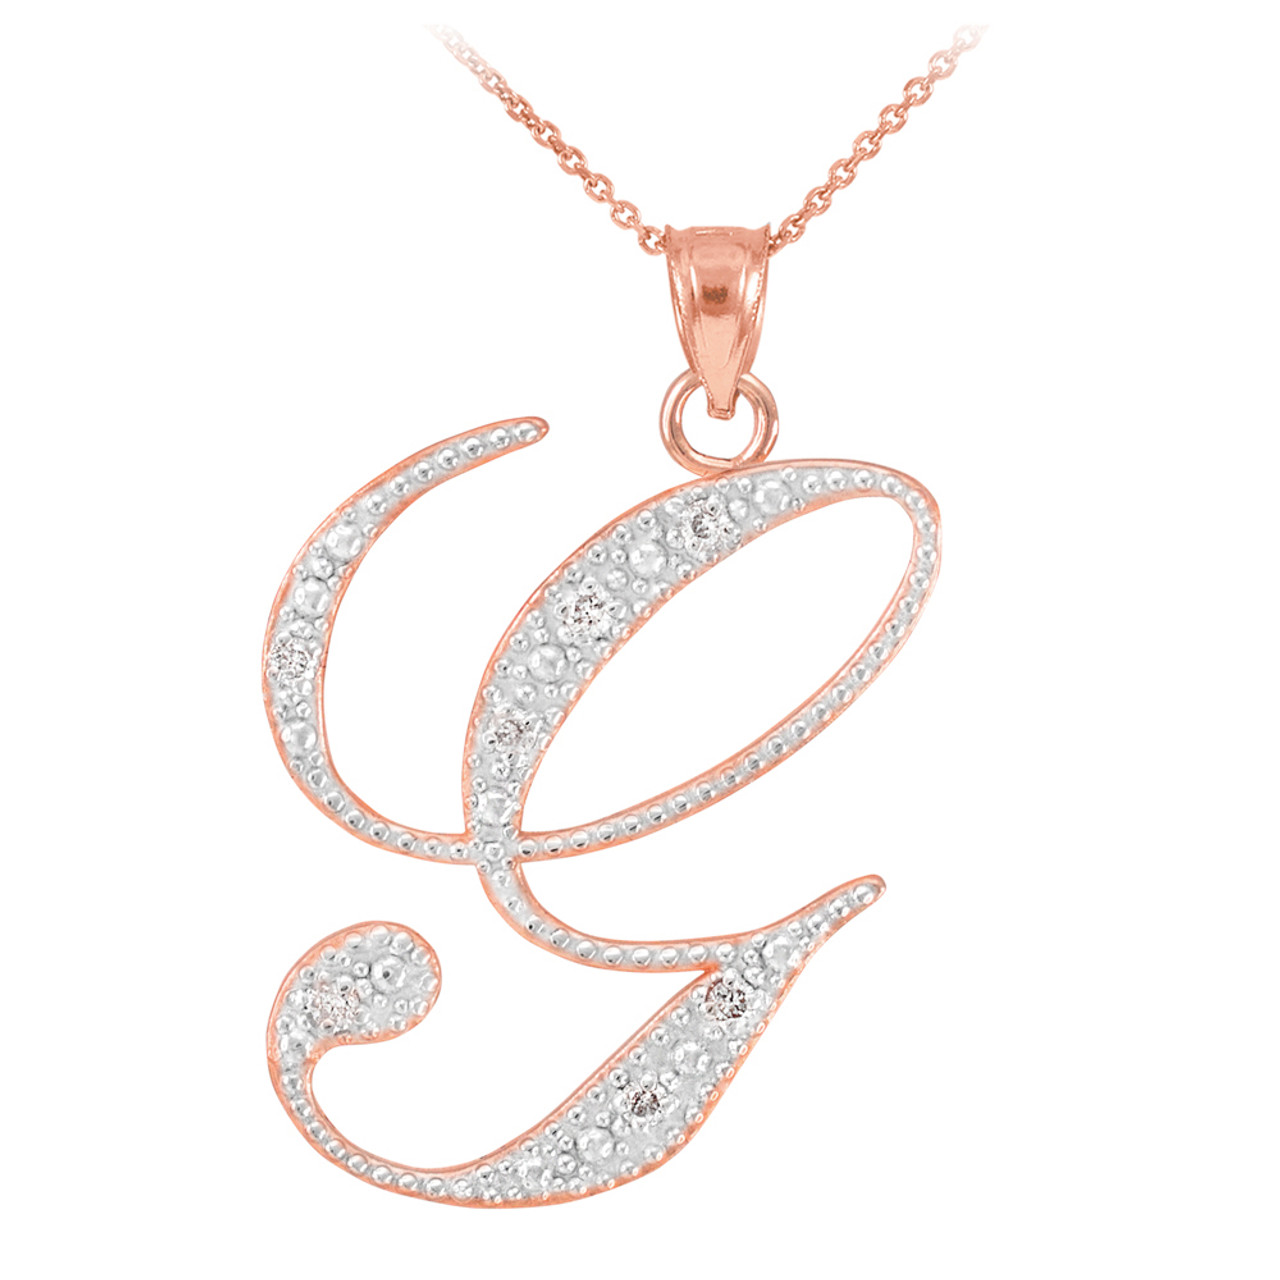 stainless pendant item necklace jewelry icftzwe elegant for fashion initial women chains silver i band alphabet steel colour plated necklaces in from chain wedding letter gold